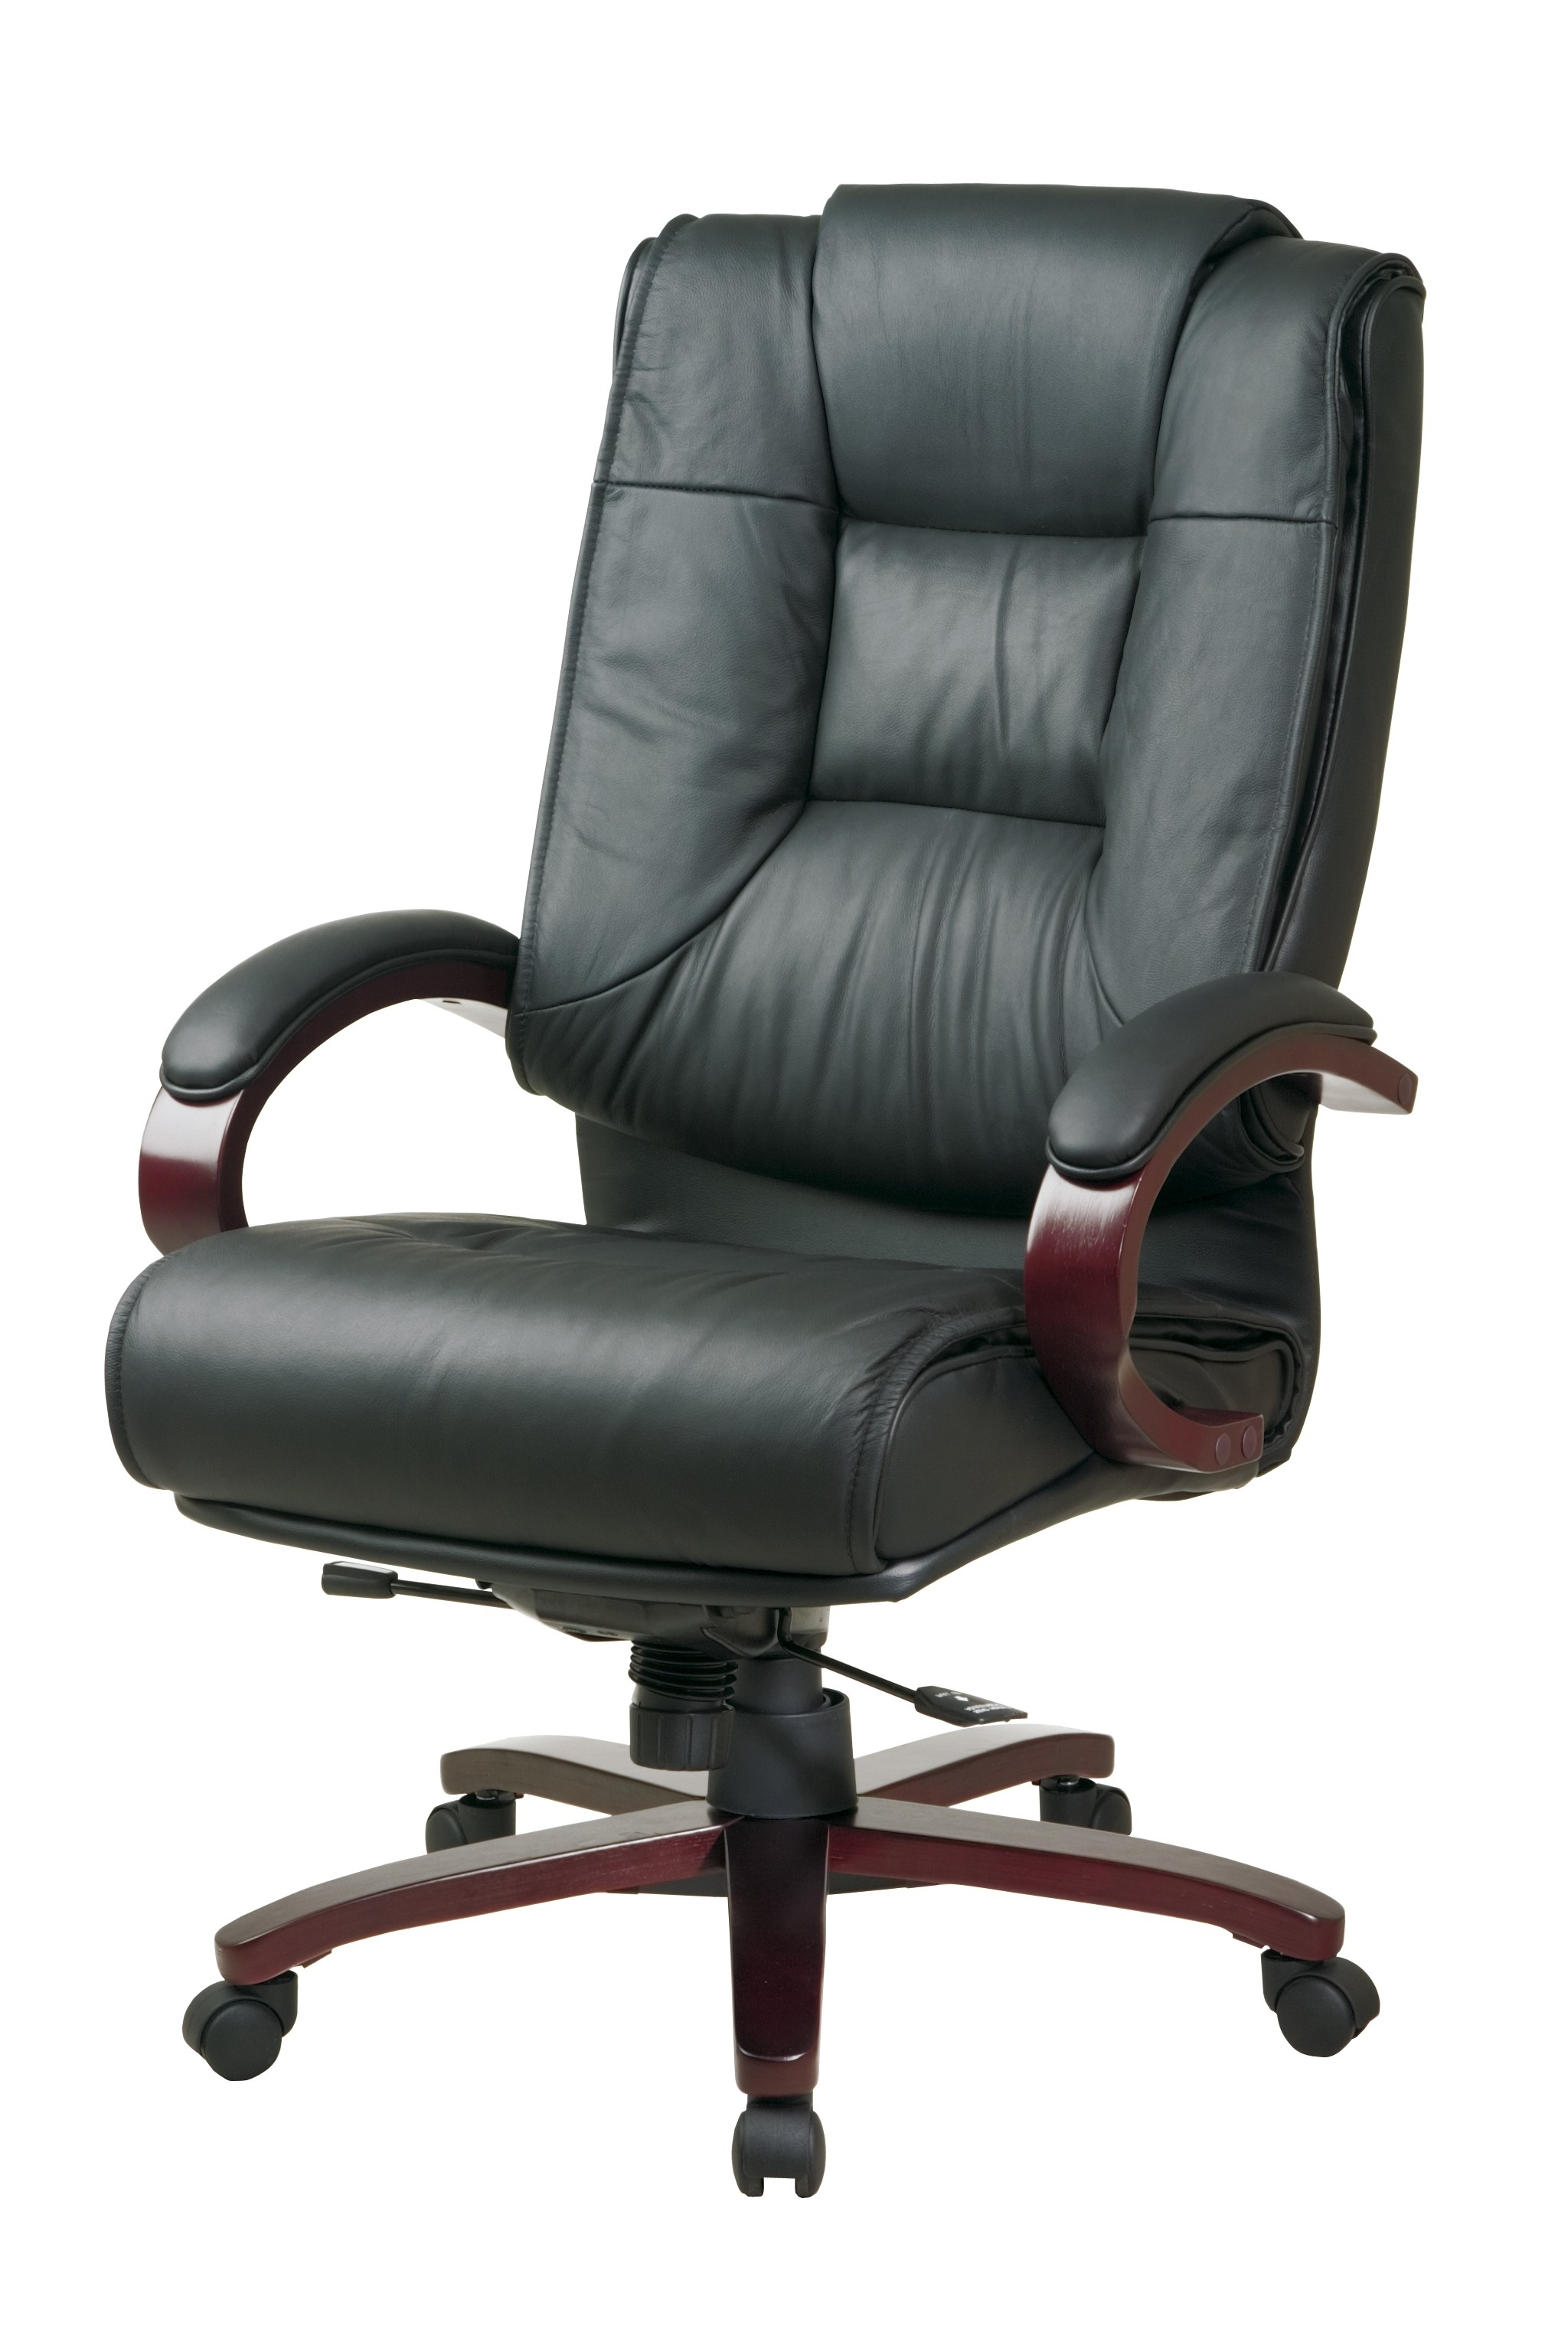 Leather Wood Executive Office Chairs Regarding Best And Newest Office: Office Chairs Ideas With Black Leather Executive Chair (View 10 of 20)